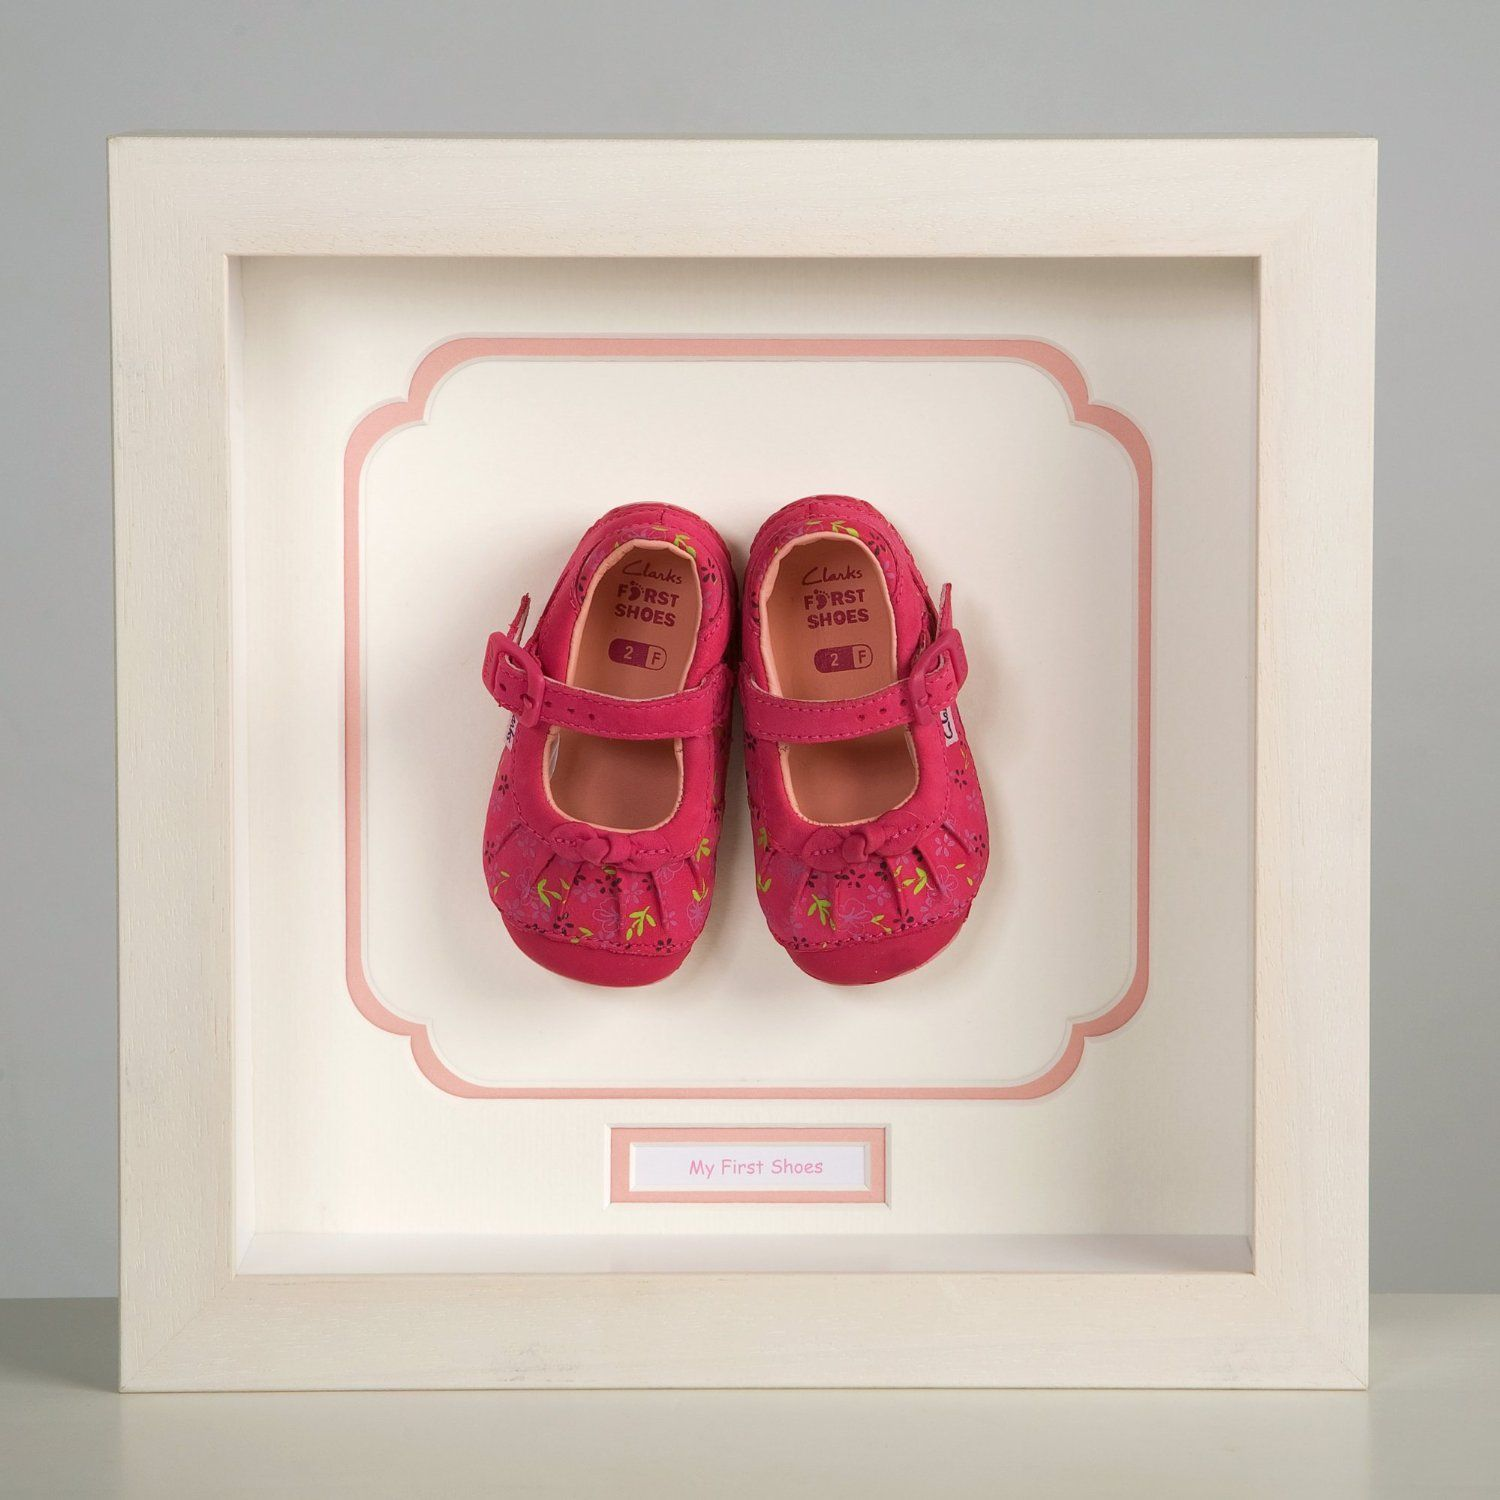 Keepsake Frame to display a child's first shoes, pink